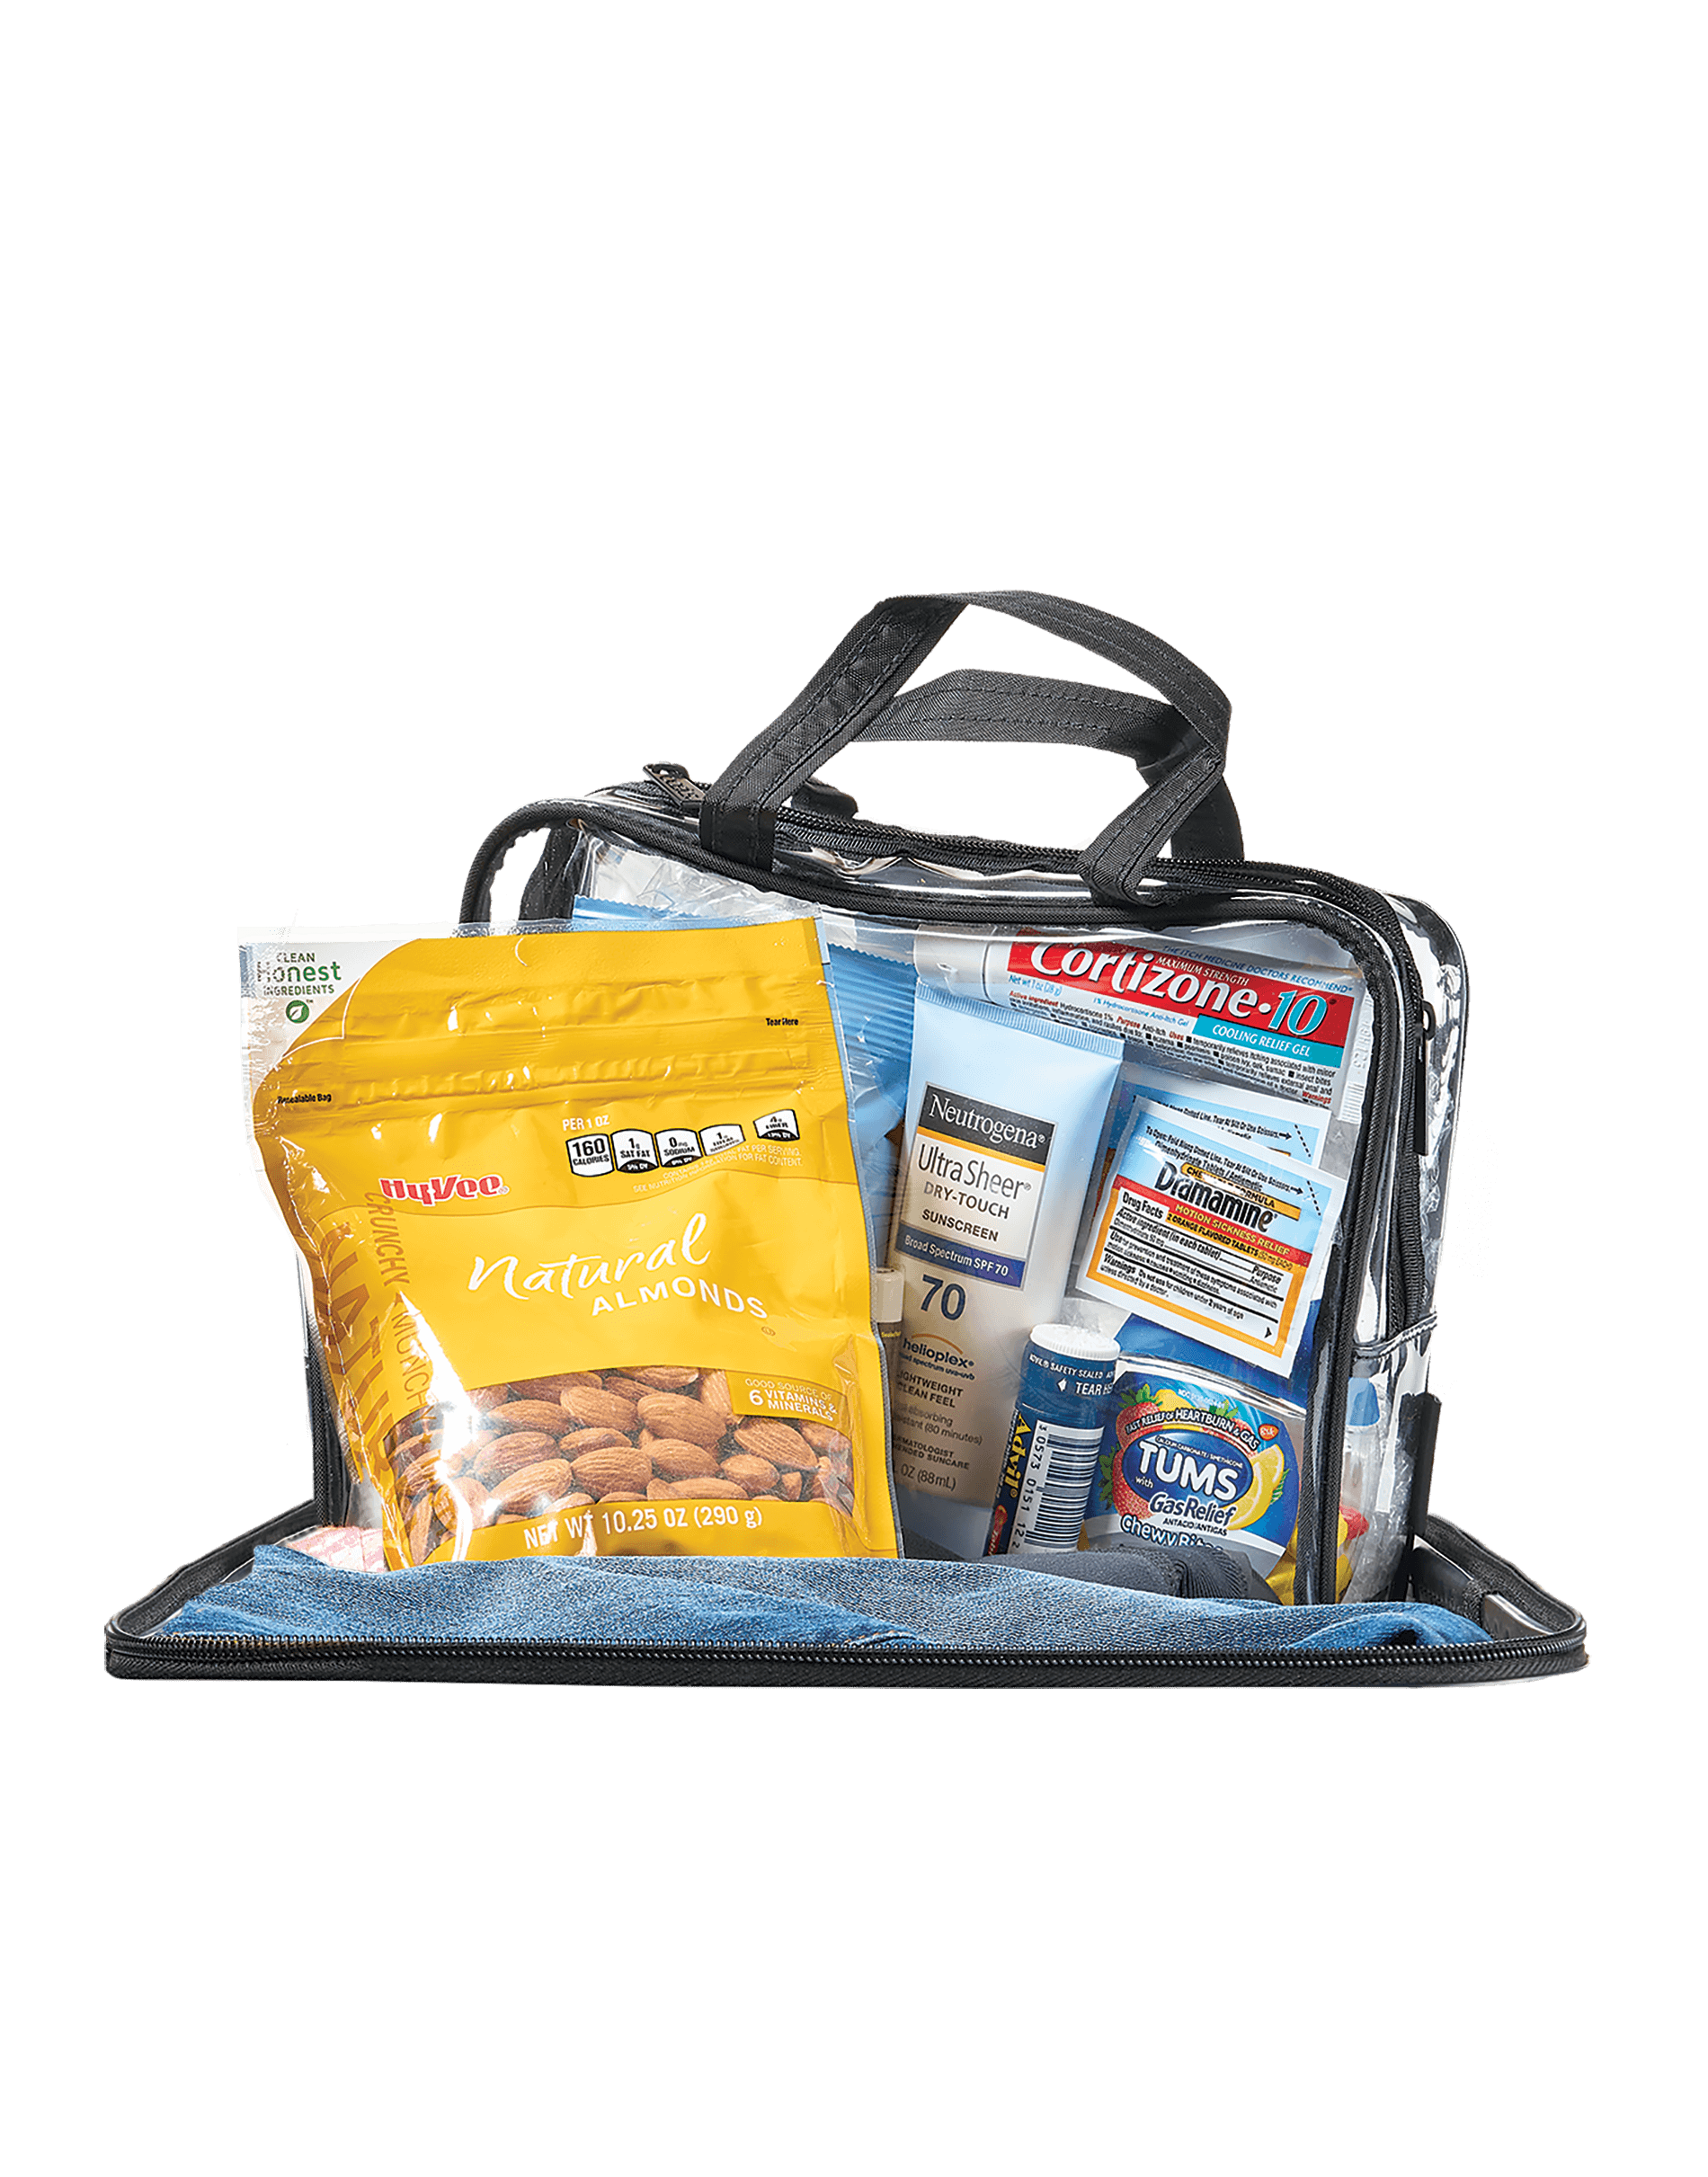 A collection of travel necessities in transparent bags.